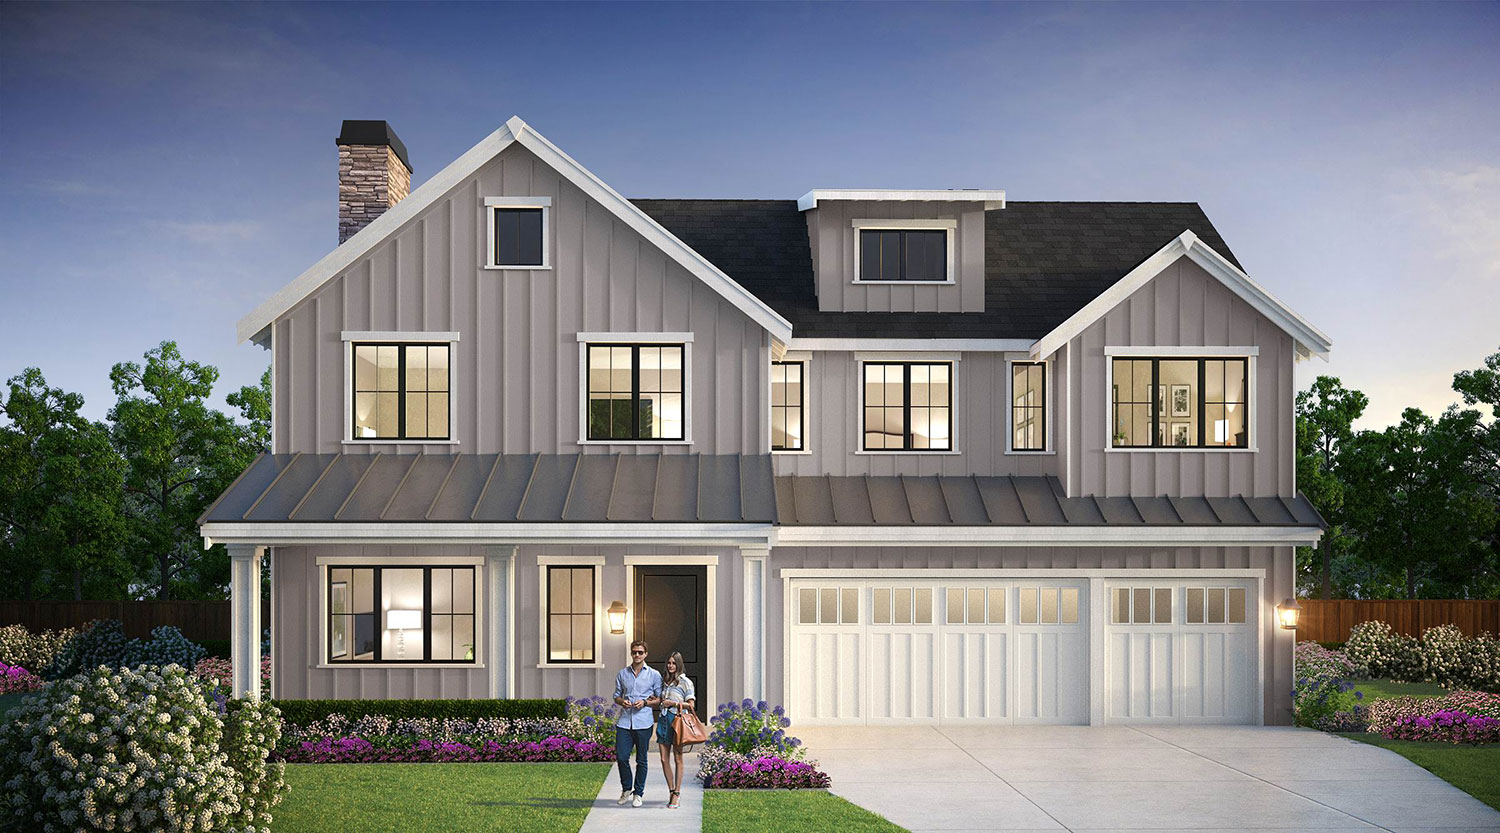 Discover The Very Finest In Luxury Living With This New Farmhouse Design By  BDR Fine Homes. Boasting Over 4,300 SF And 4 Bedroom Suites Plus A Den, ...